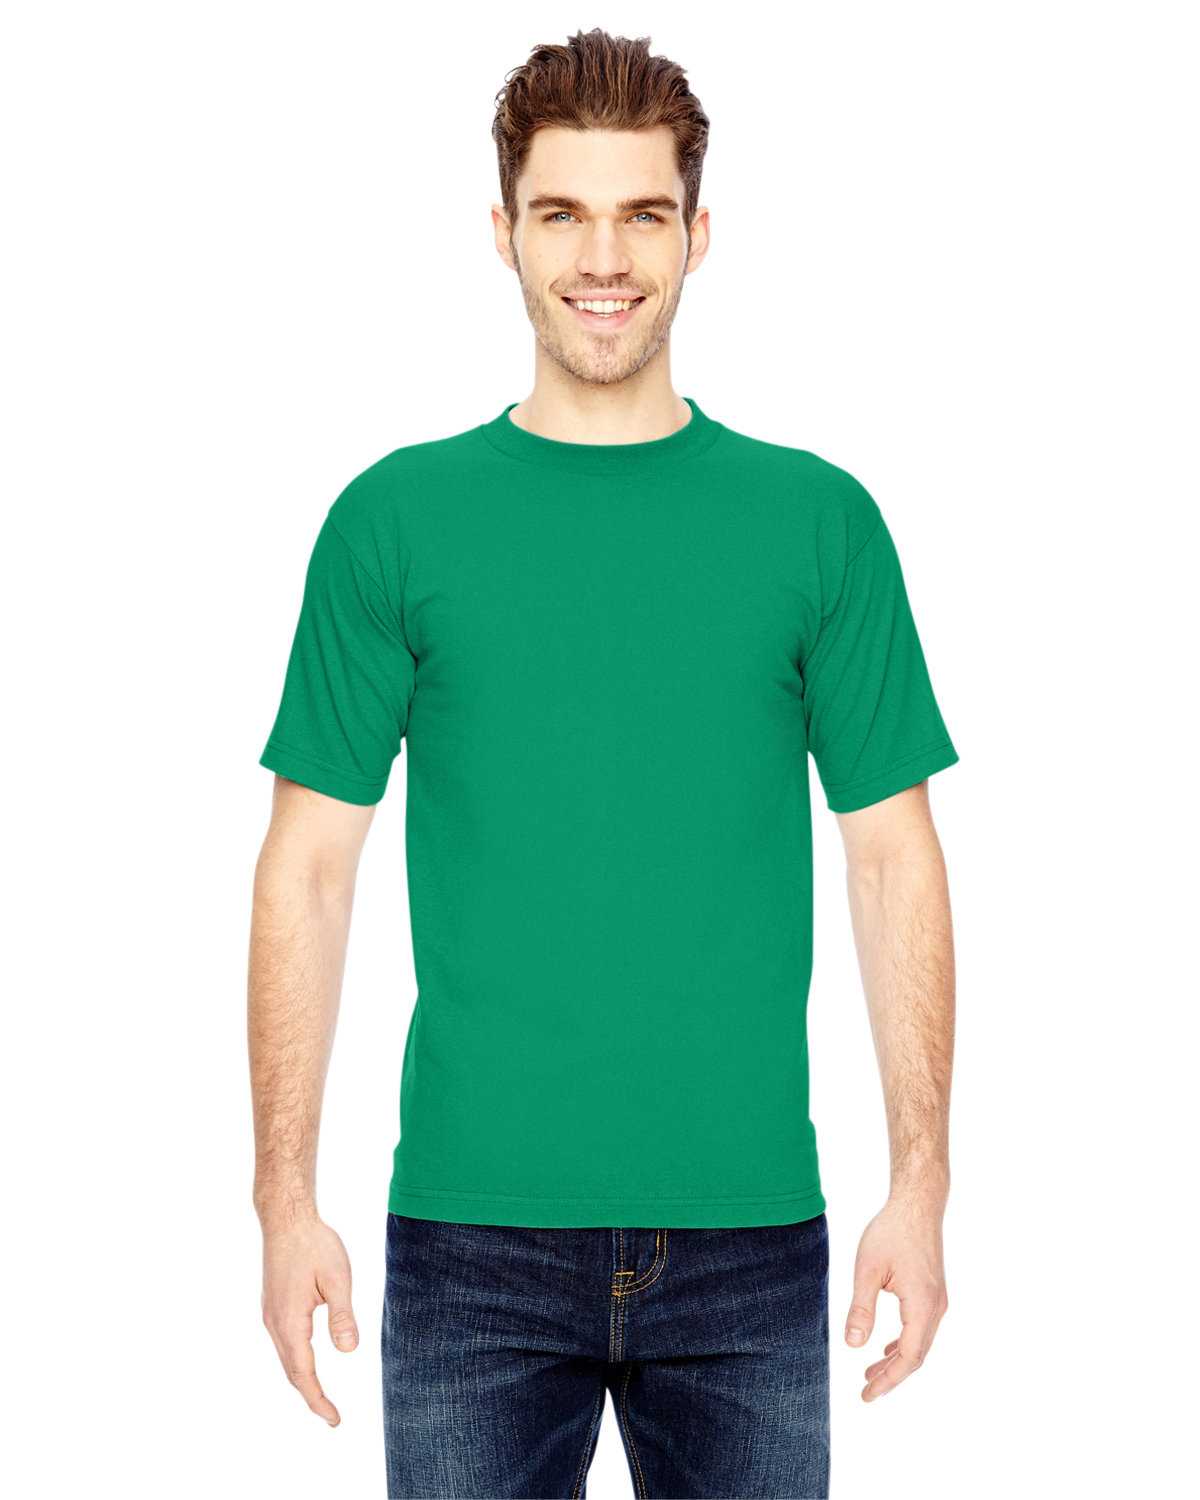 Bayside Adult 6.1 oz., 100% Cotton T-Shirt KELLY